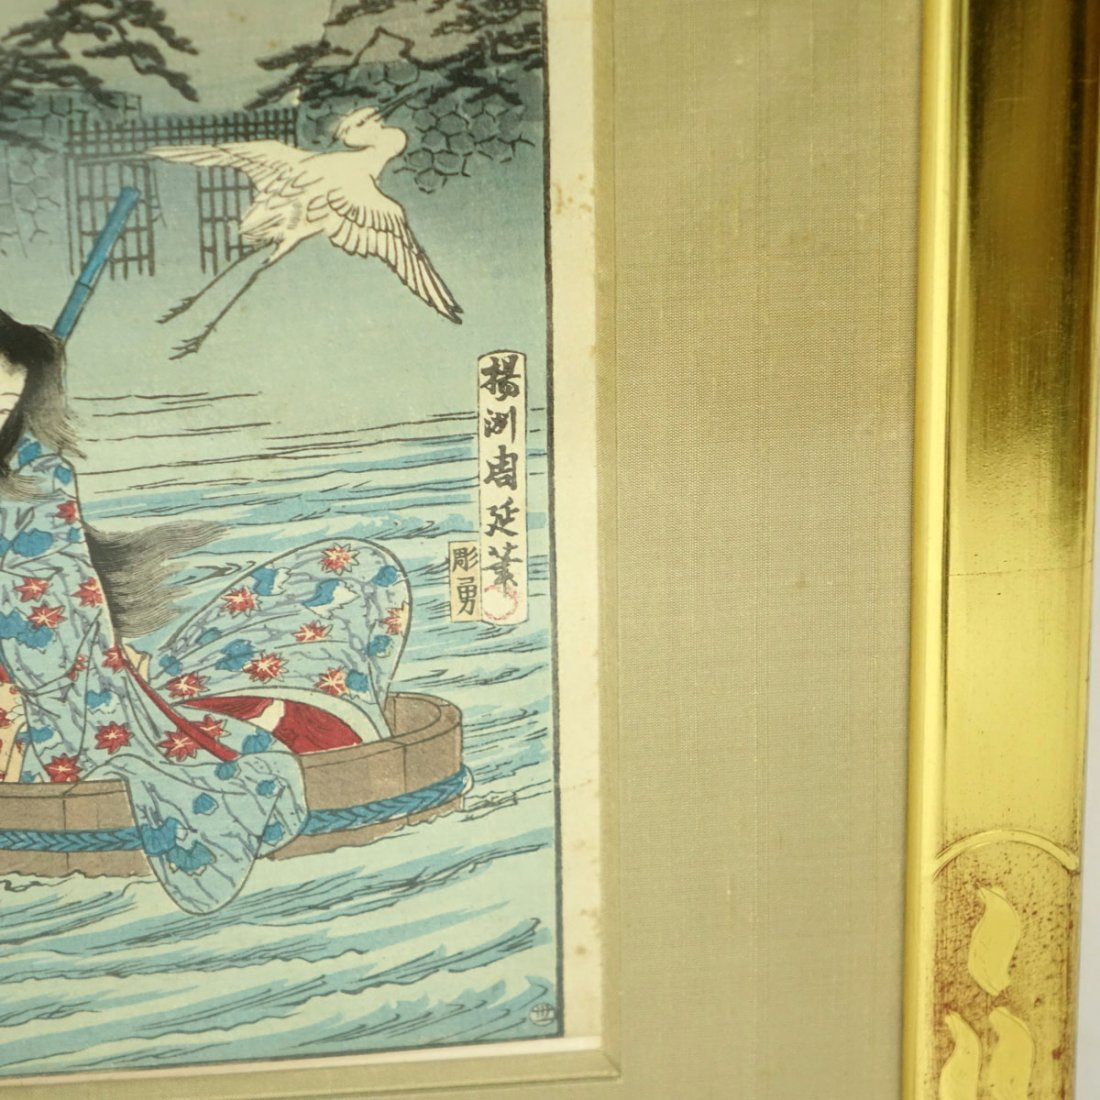 Japanese Woodblock Prints - 7